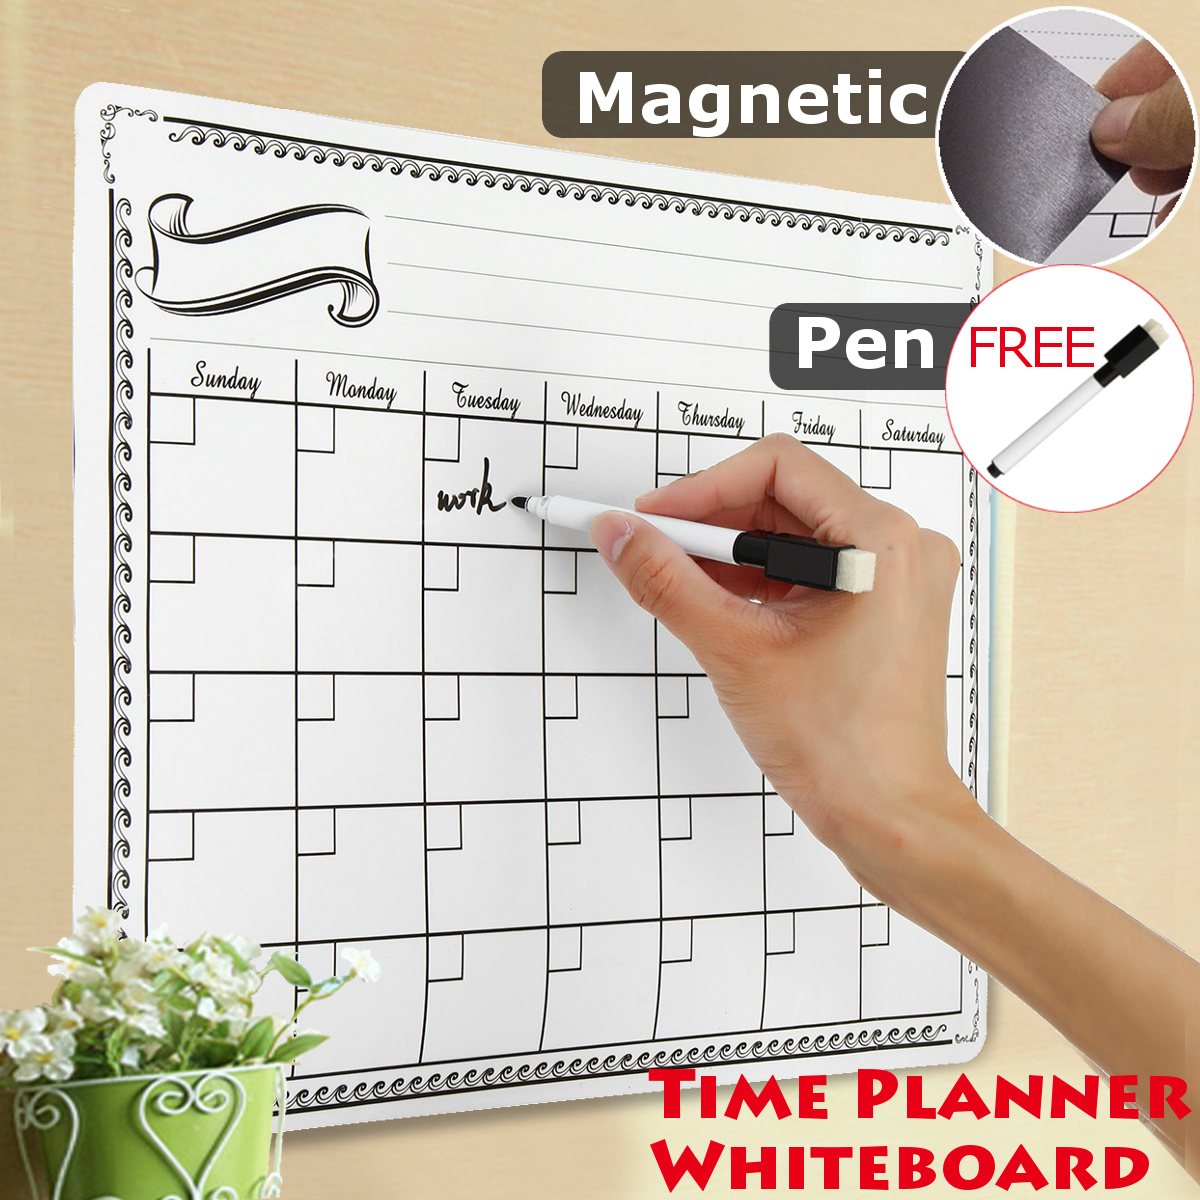 Magnet Plan Whiteboard Flexible Fridge Magnetic Refrigerator  Board Waterproof Drawing Message Board 42X30CM